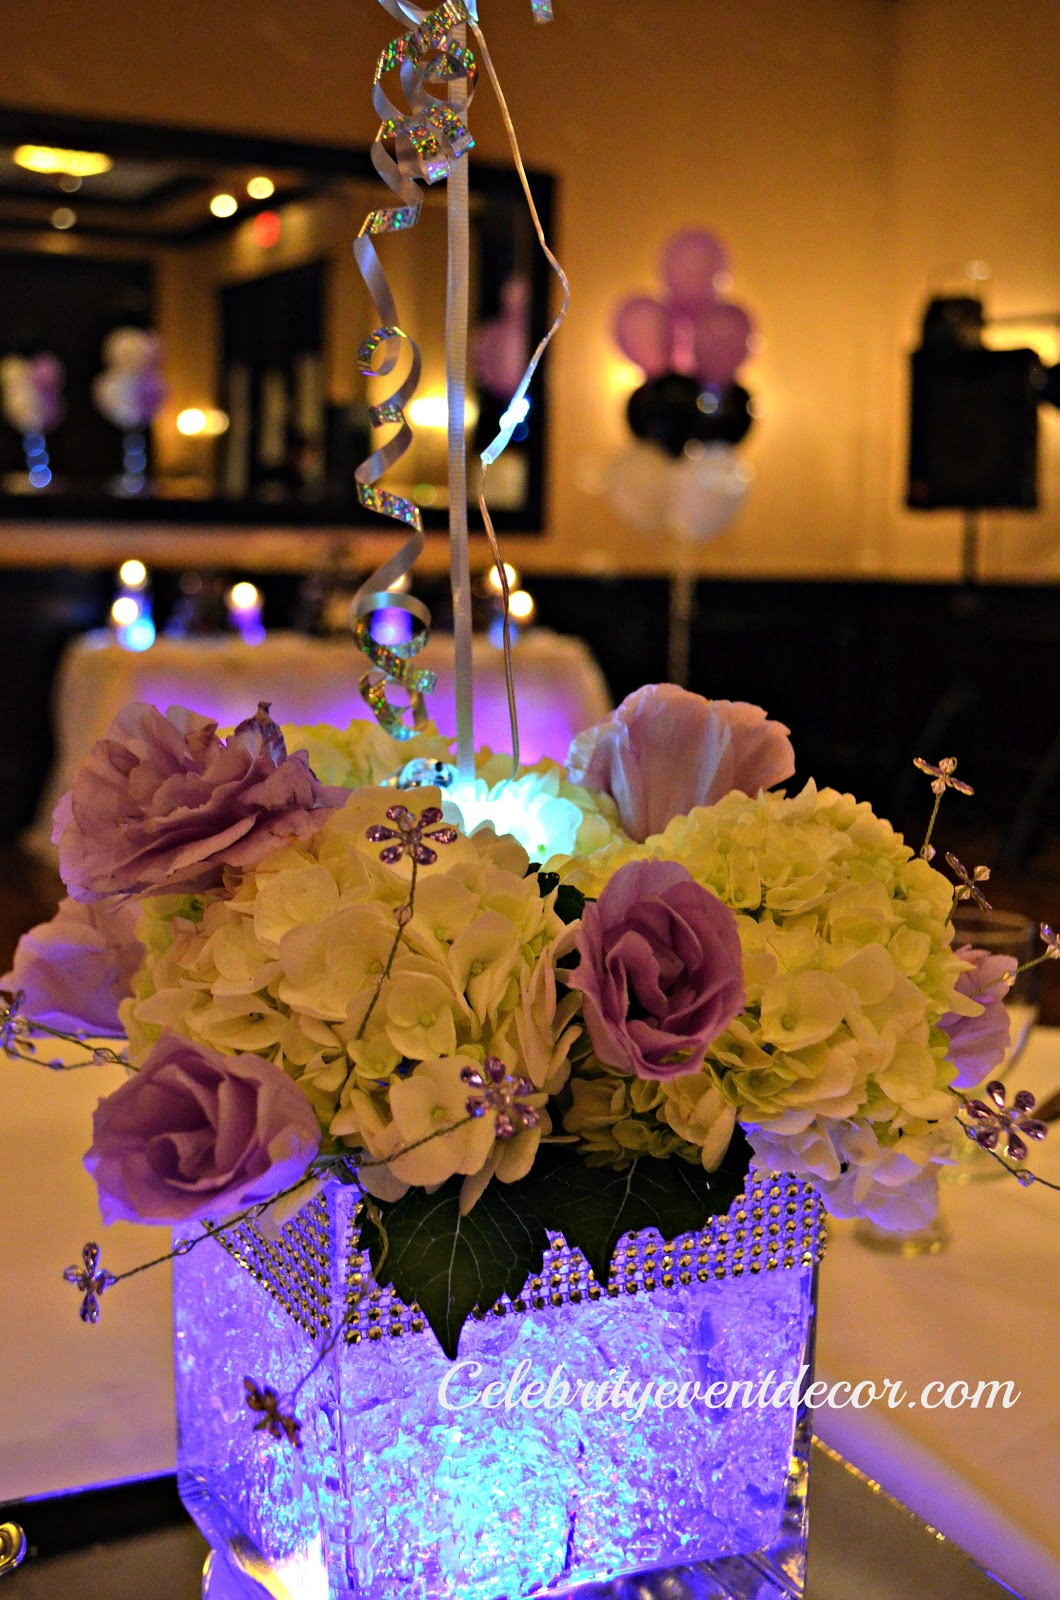 Celebrity Event Decor Amp Banquet Hall Llc October 2012